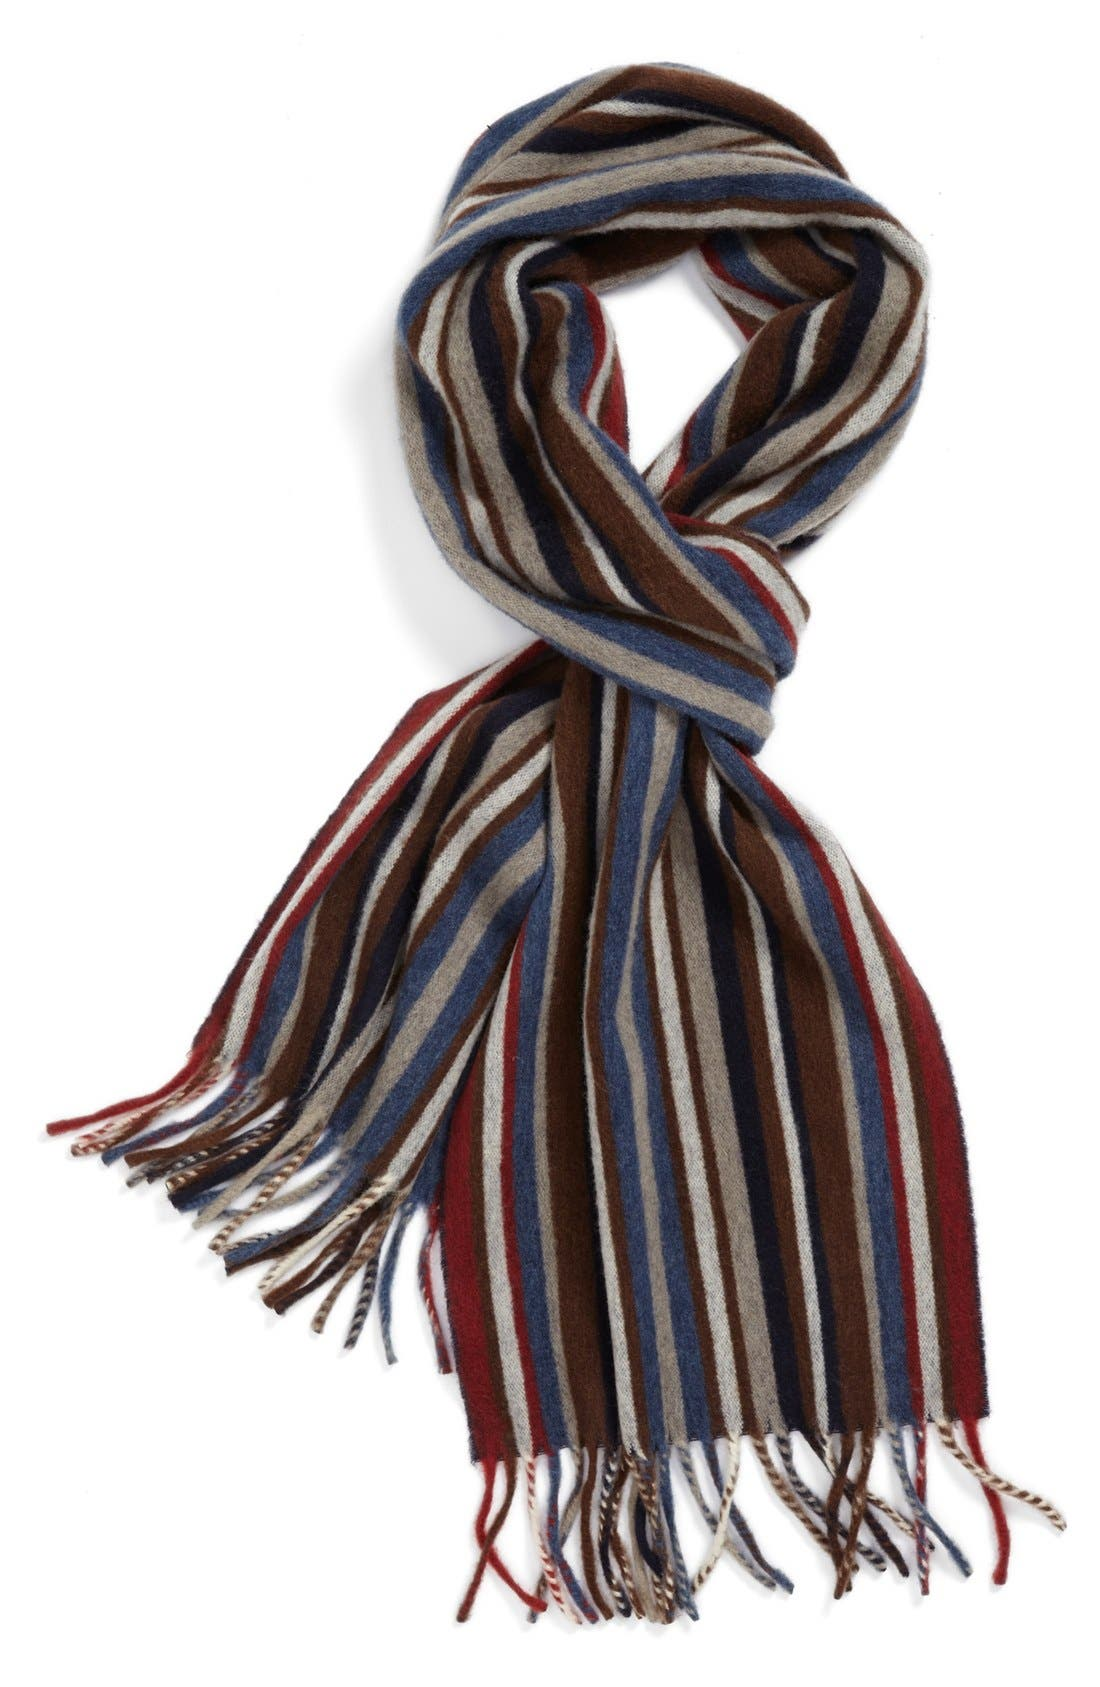 Alternate Image 1 Selected - Andrew Stewart 'Sinclair' Cashmere Scarf